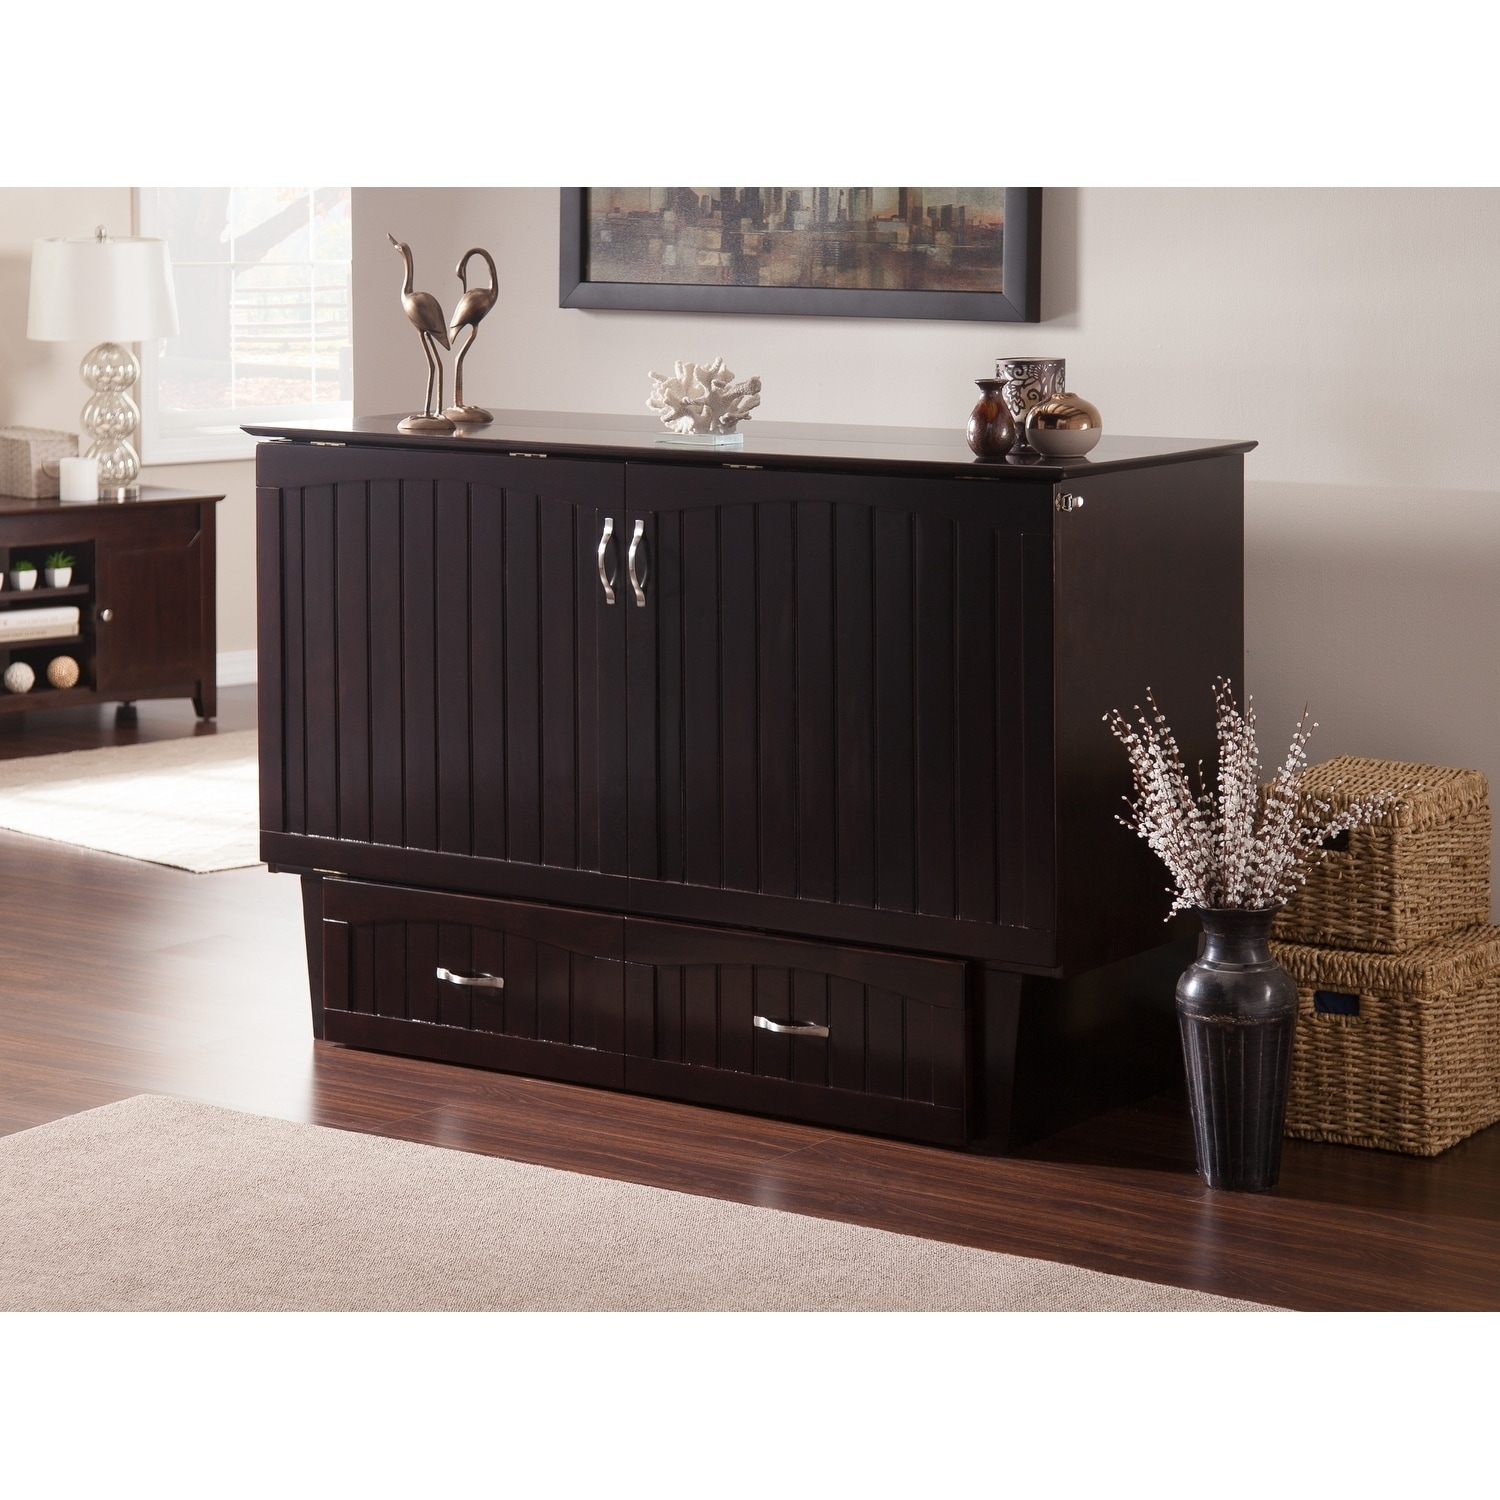 Murphy Bed.Nantucket Murphy Bed Chest Queen In Espresso With Charging Station Coolsoft Mattress